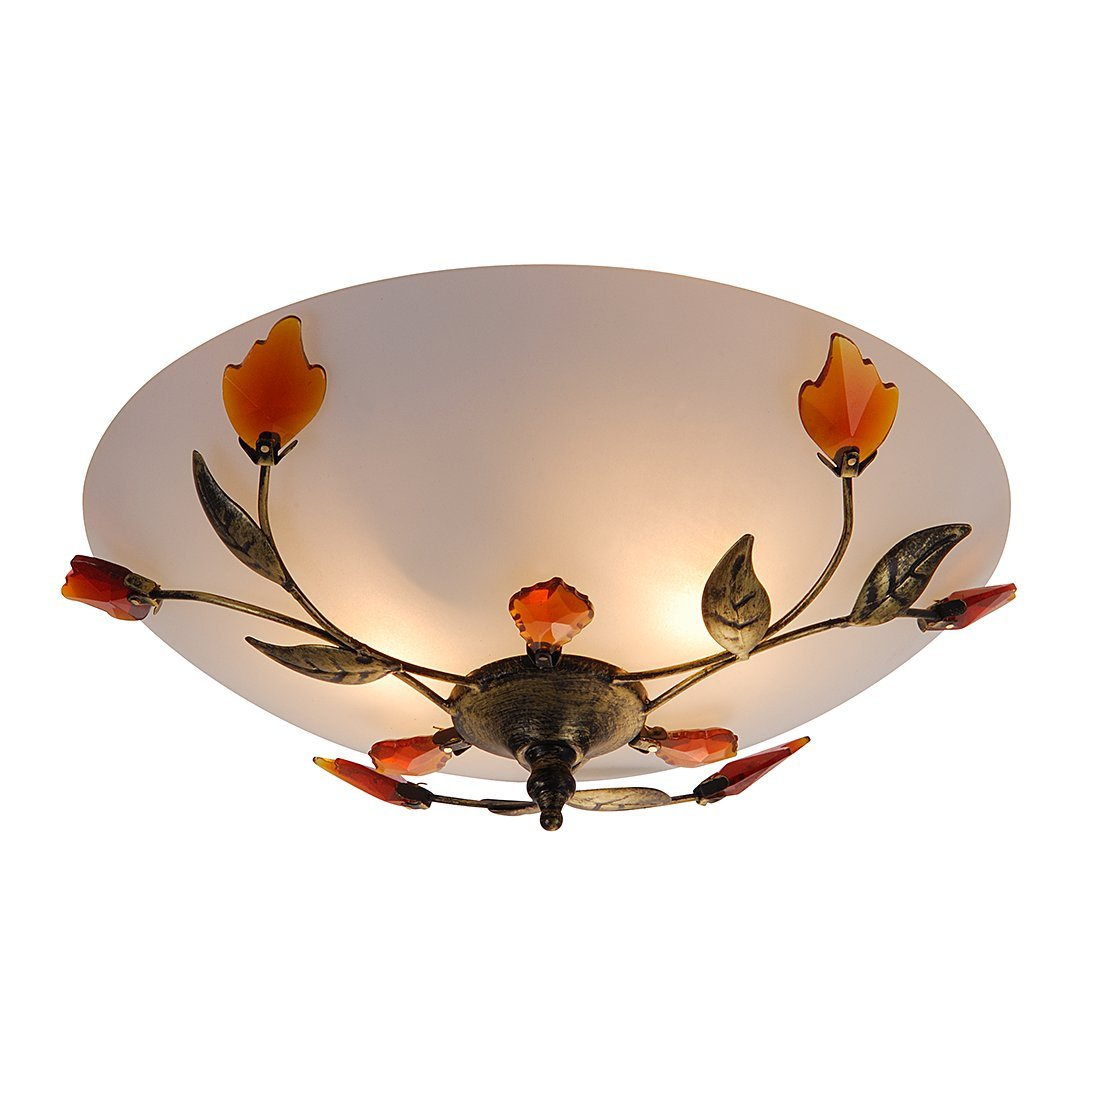 Globo Metal Opal Satined Decor Leaves Pandora Ceiling Lamp       review and more description